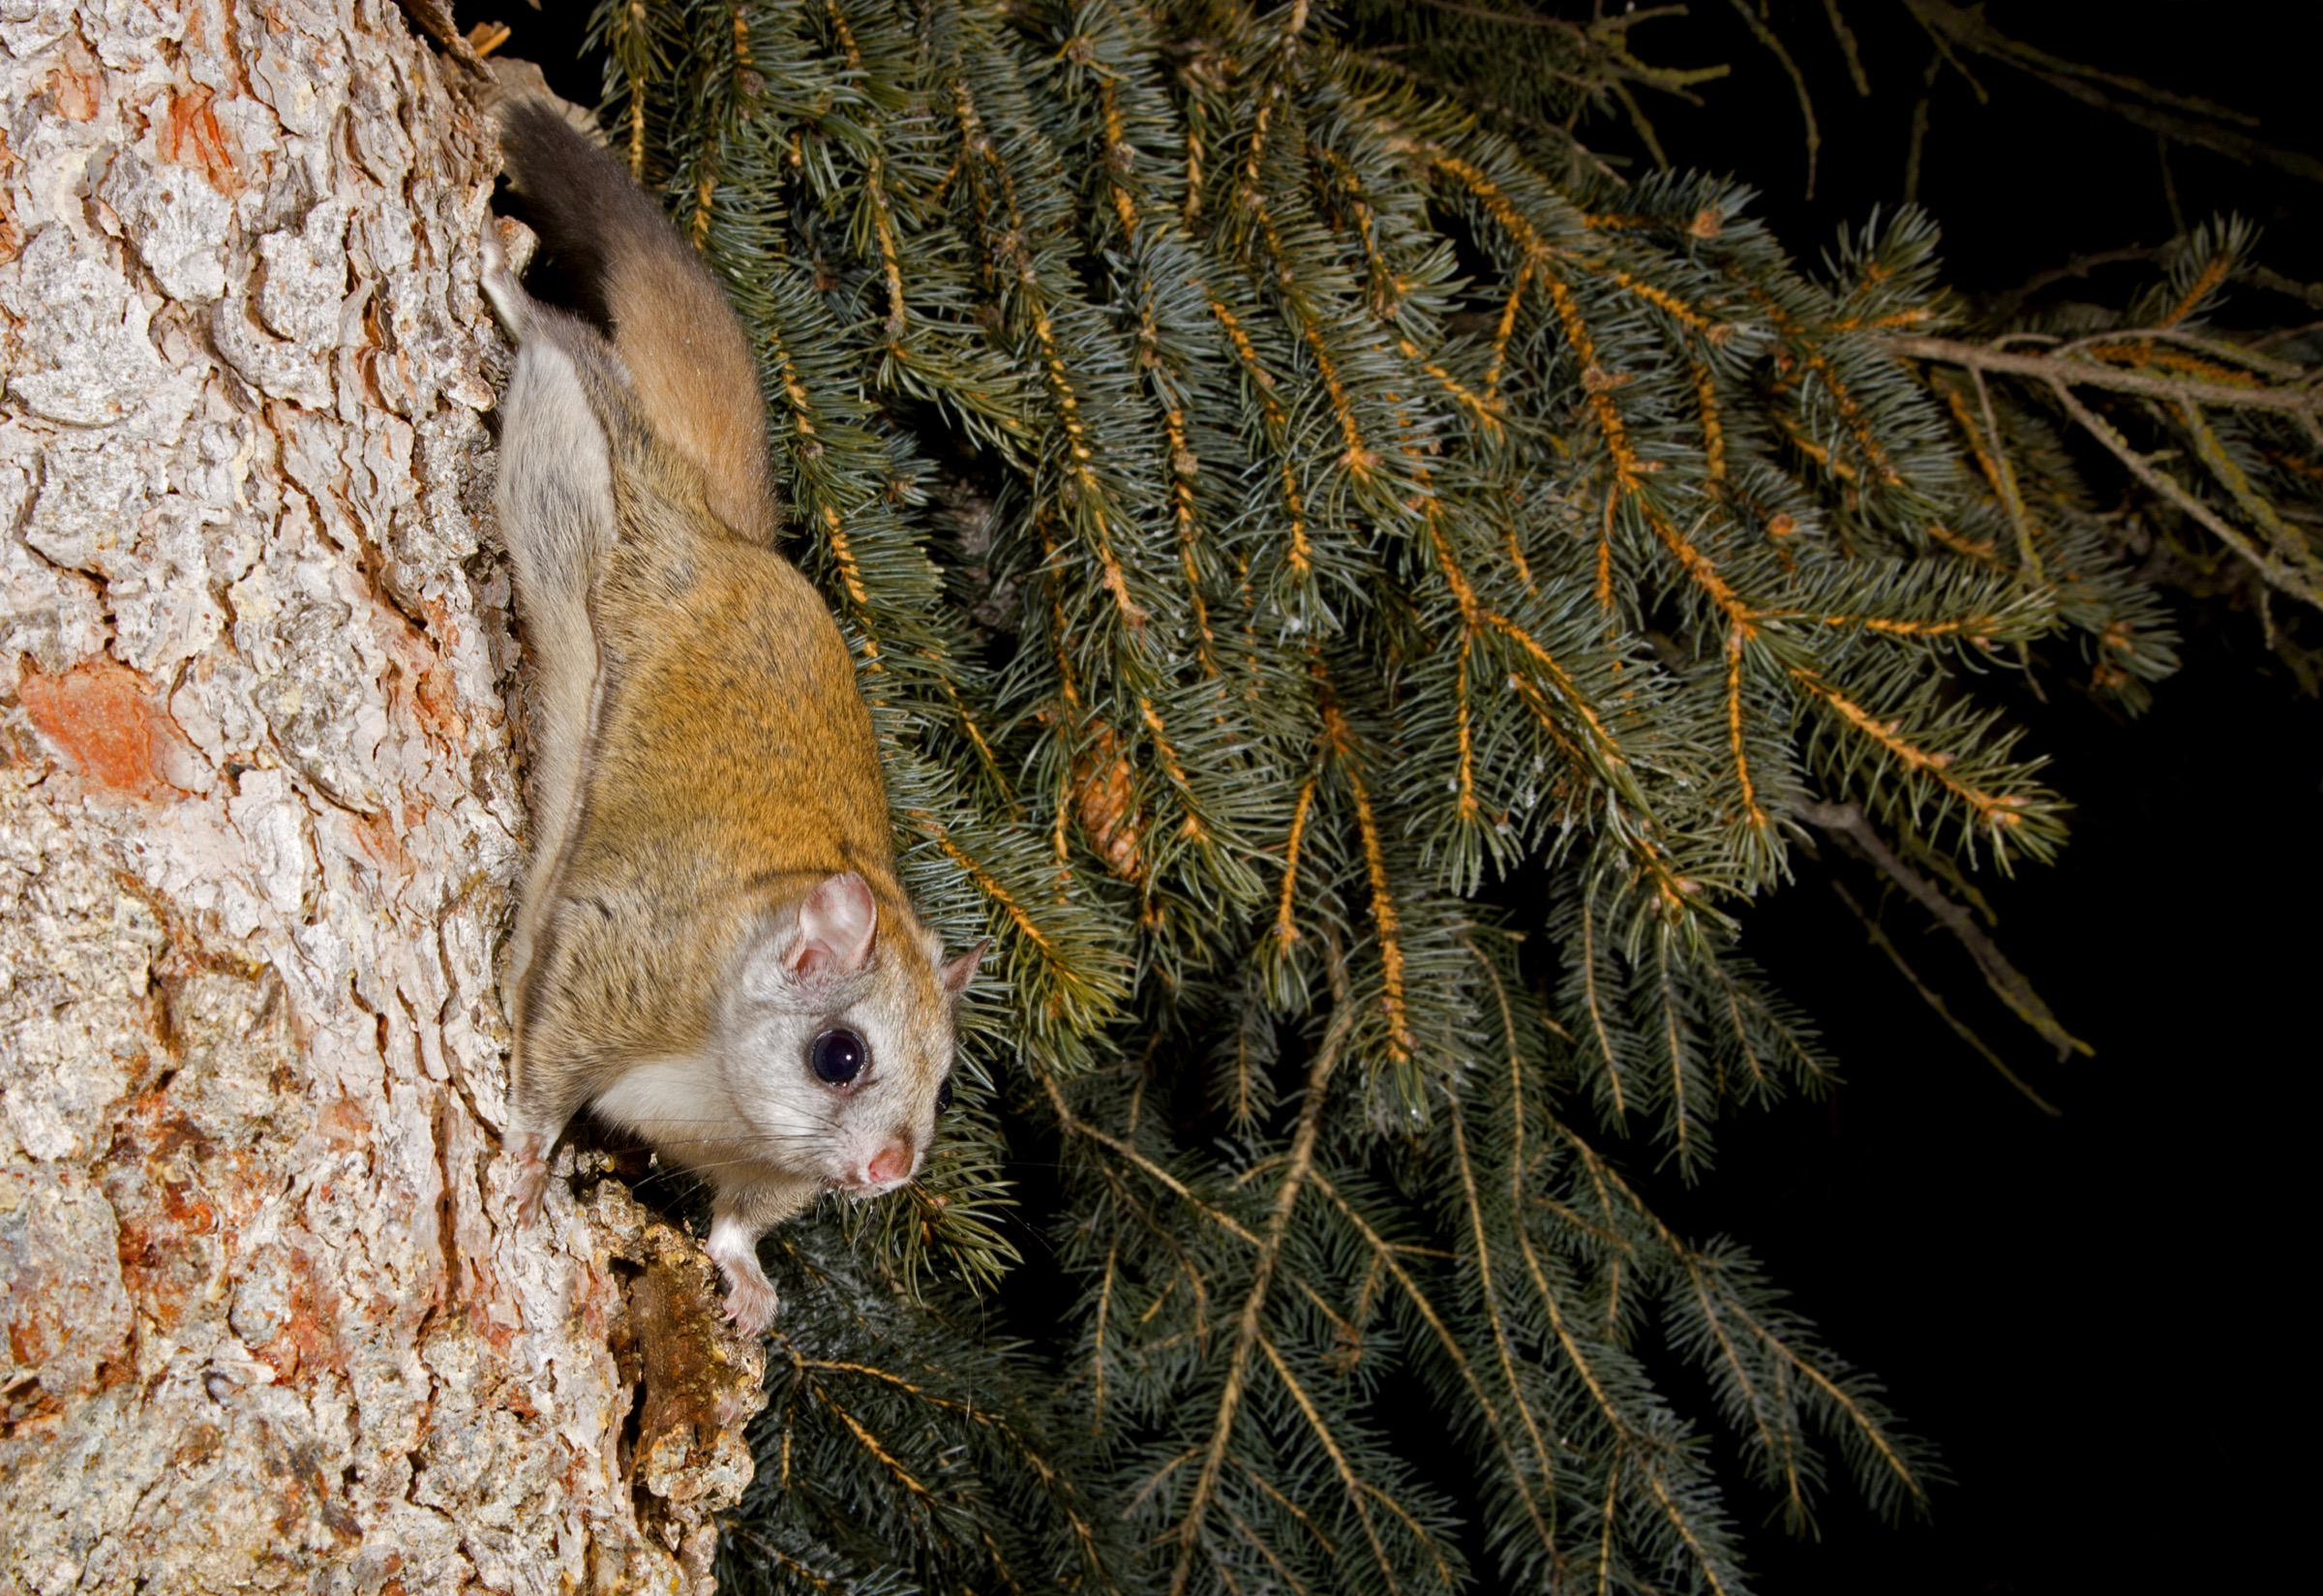 There are more than 40 species of flying squirrels in the world, two of which—the northern and southern flying squirrels—occur in North America. The northern flying squirrel (featured in this article) ranges across Canada, Alaska, and the northern United States, typically occupying cool mountain zones as far south as North Carolina.